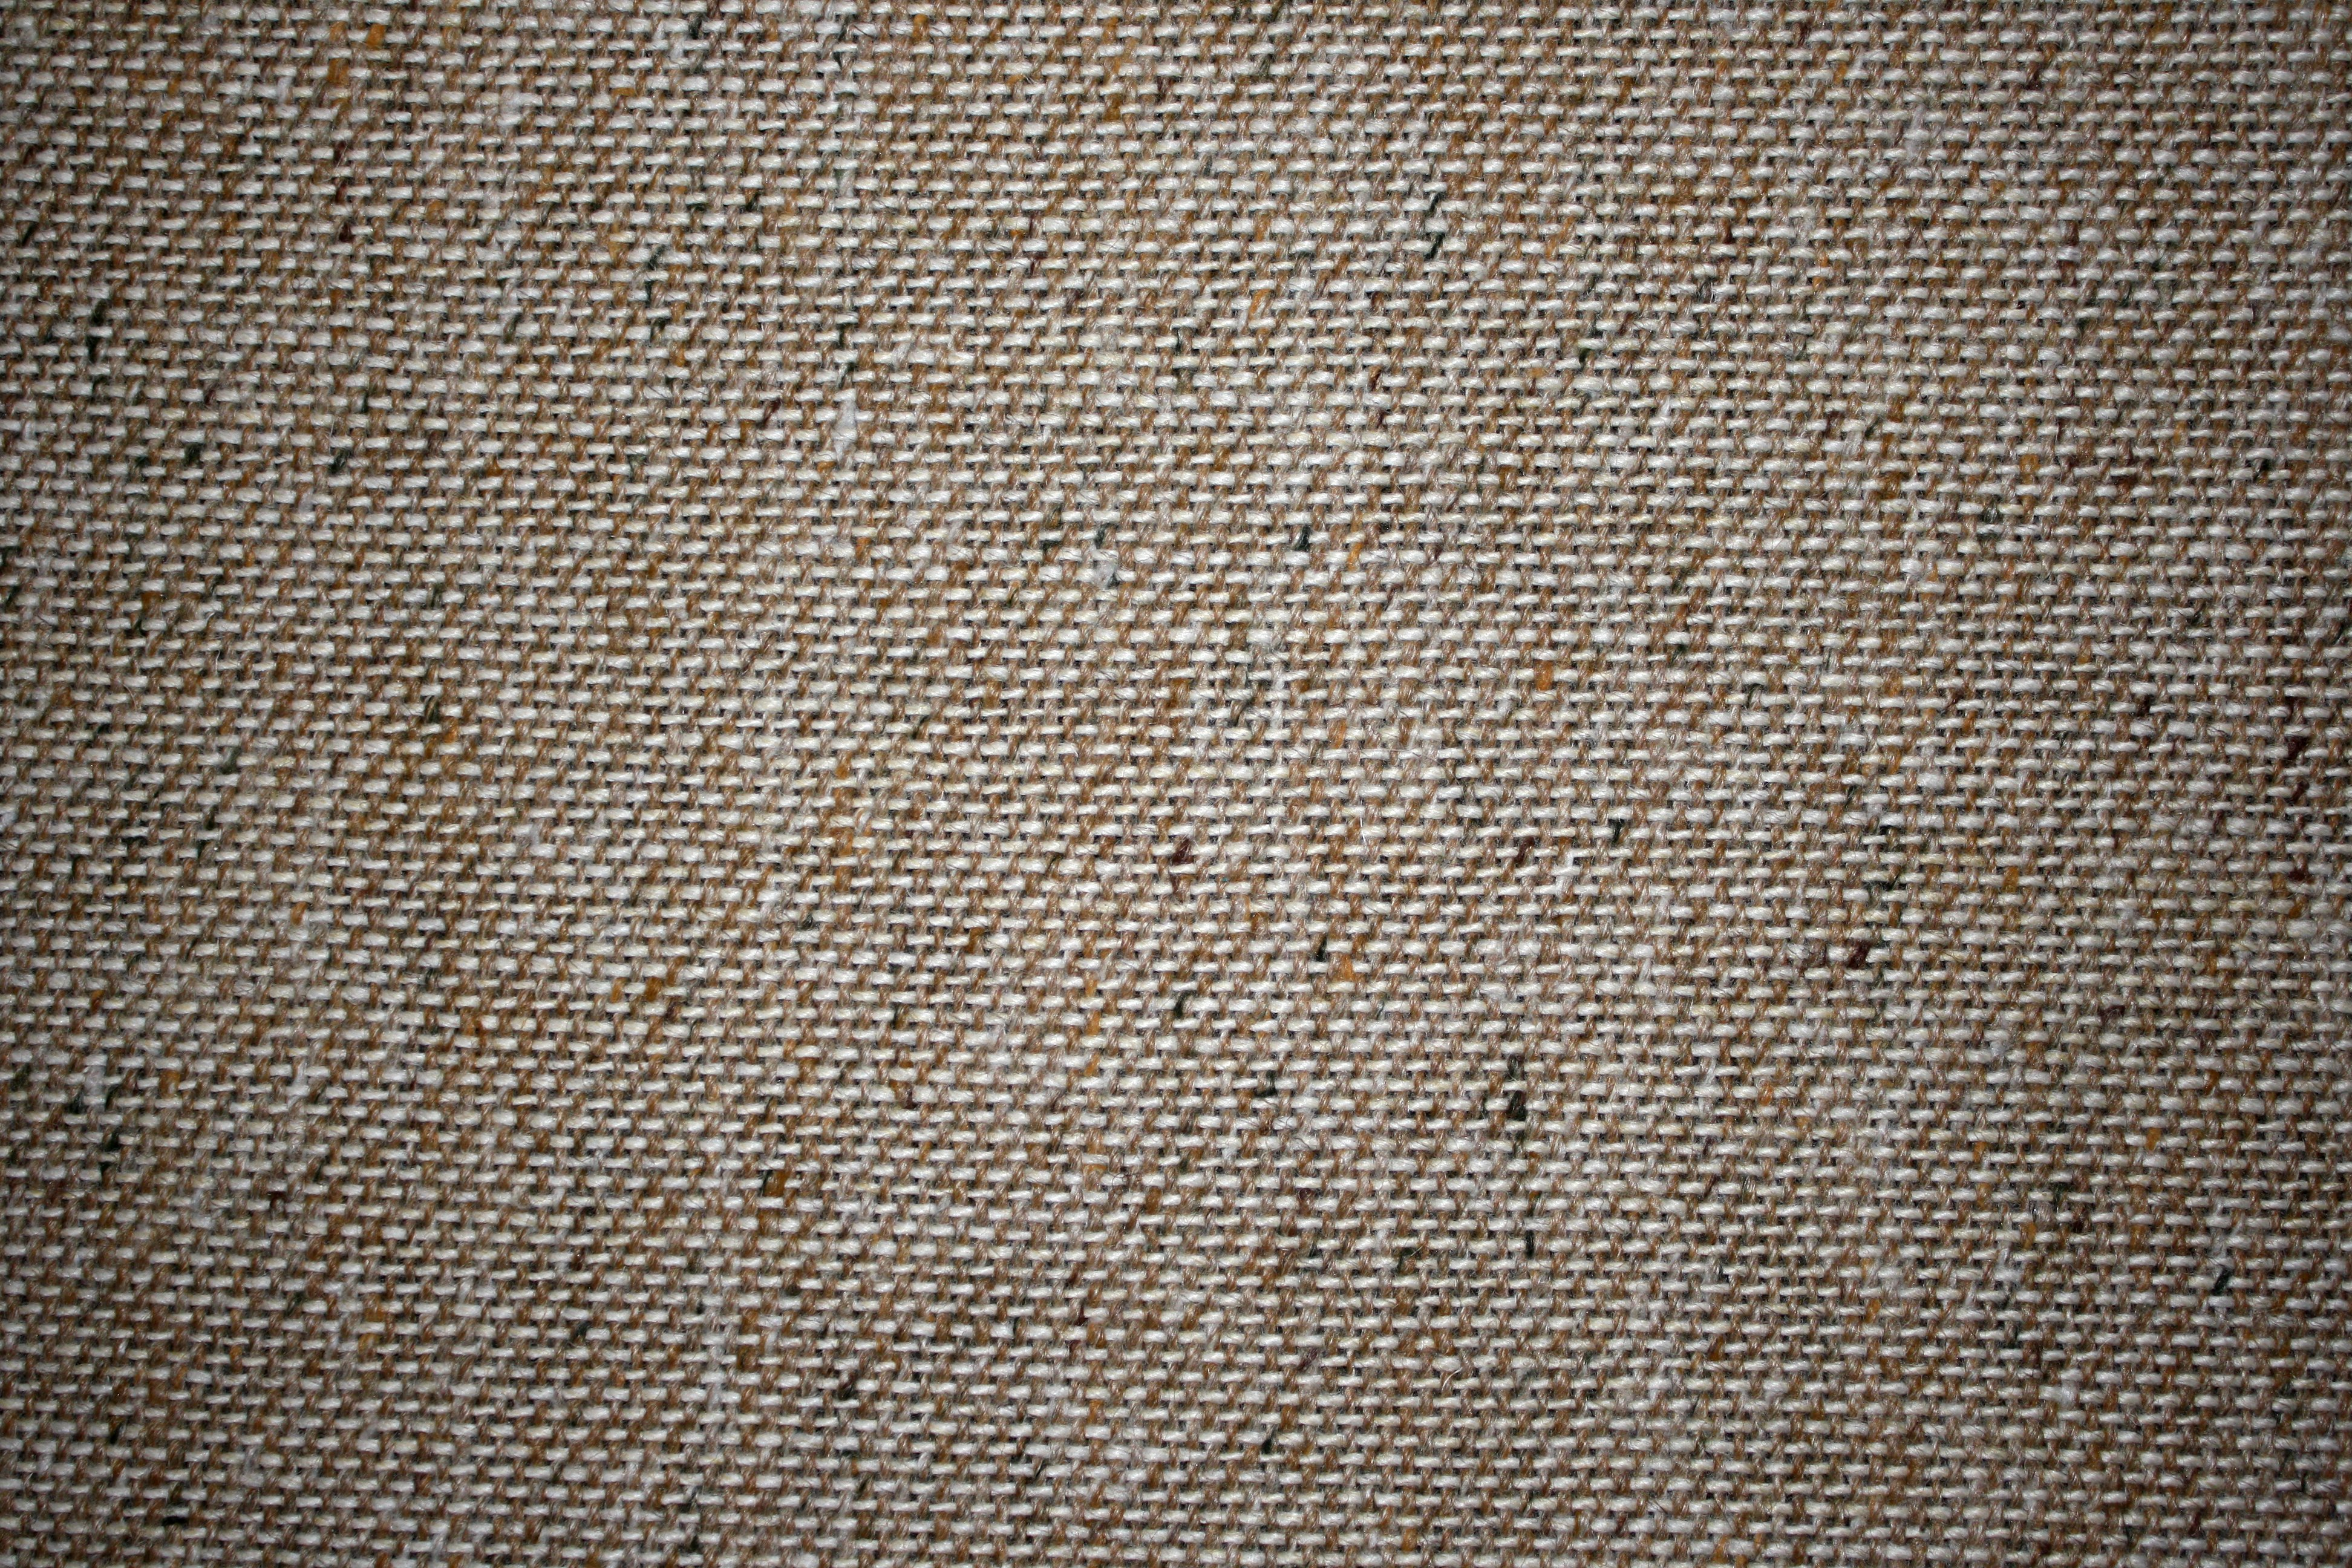 Brown And White Upholstery Fabric Close Up Texture